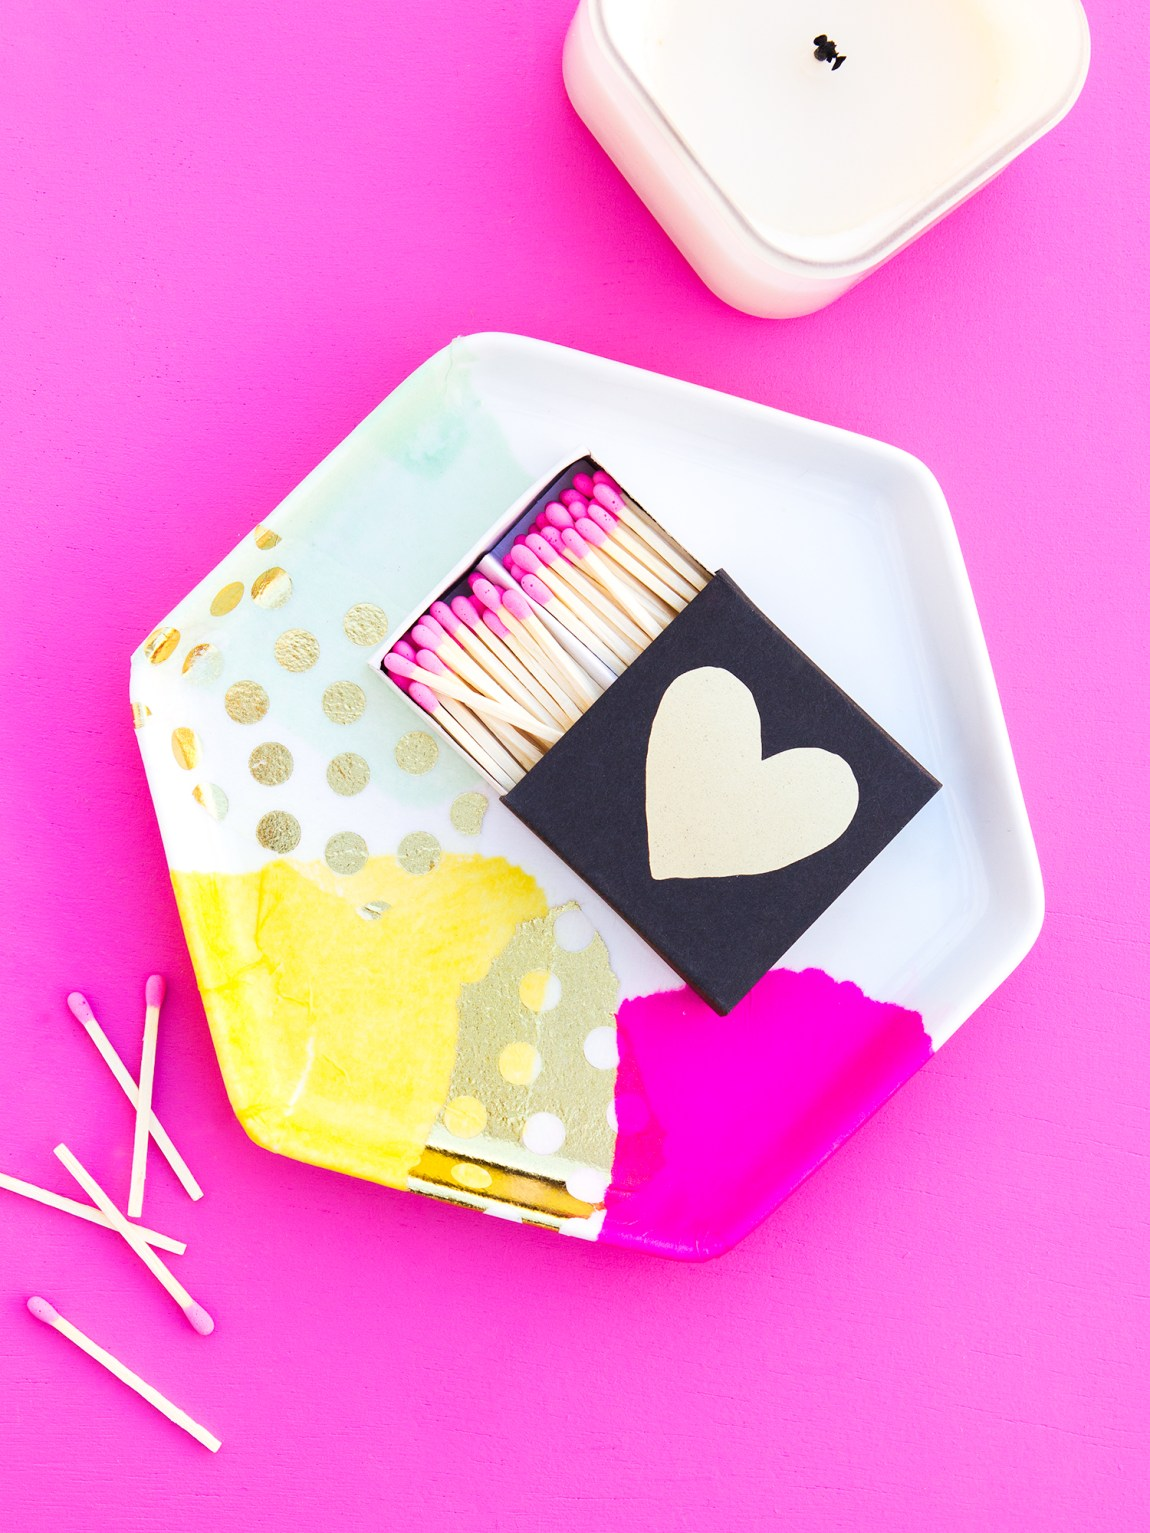 Learn how to create a pretty tray in just a few minutes in this easy to follow video tutorial!